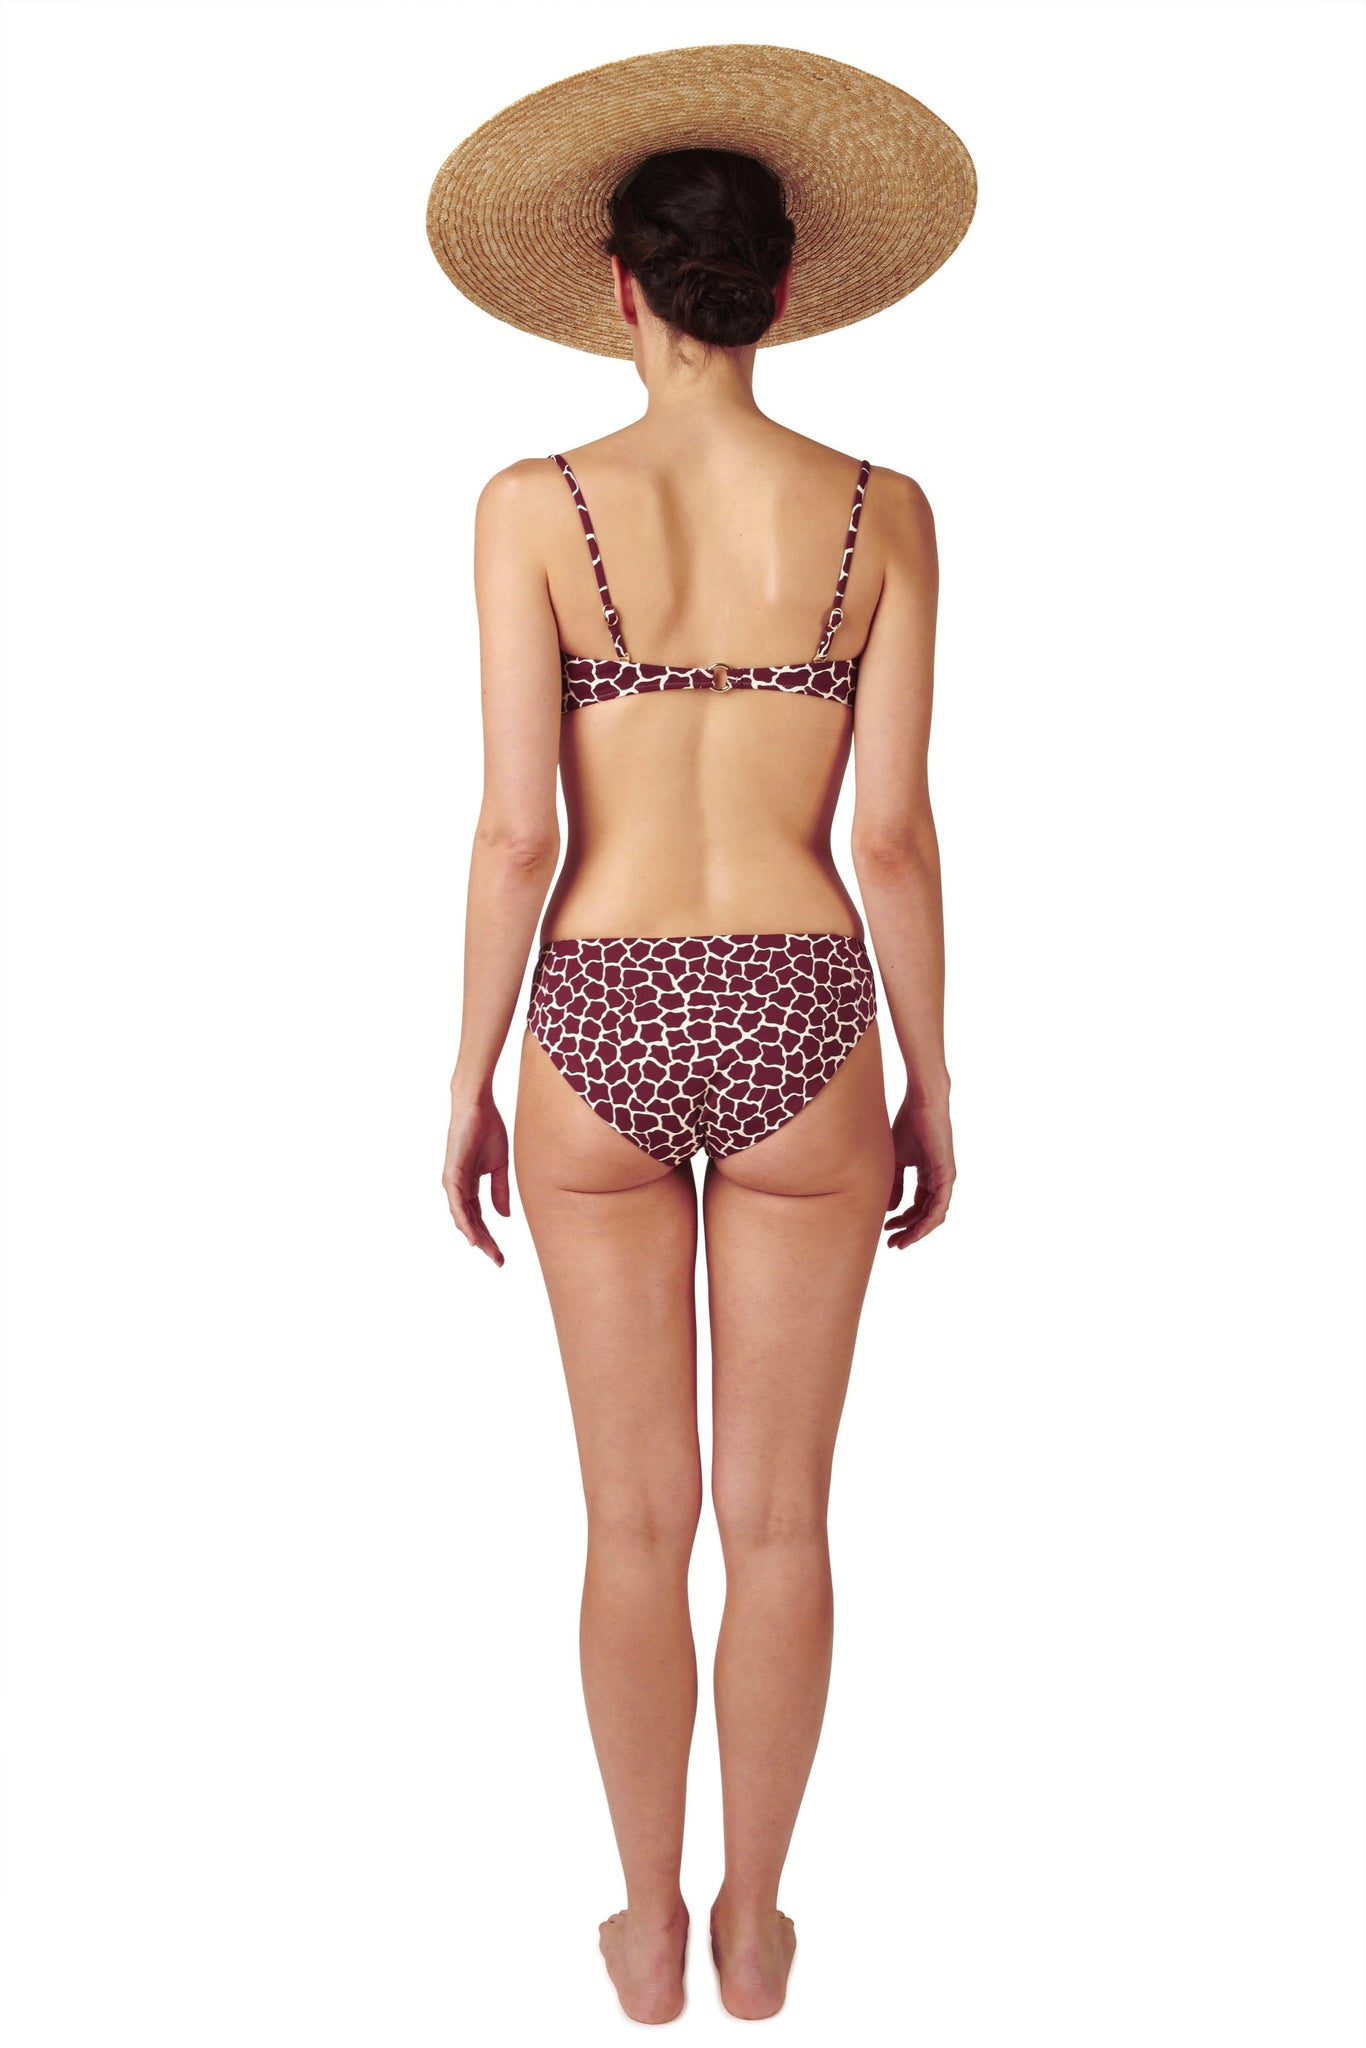 Bandeau top and covering bikini bottom in dark red burgundy giraffe animal print by Caroline af Rosenborg